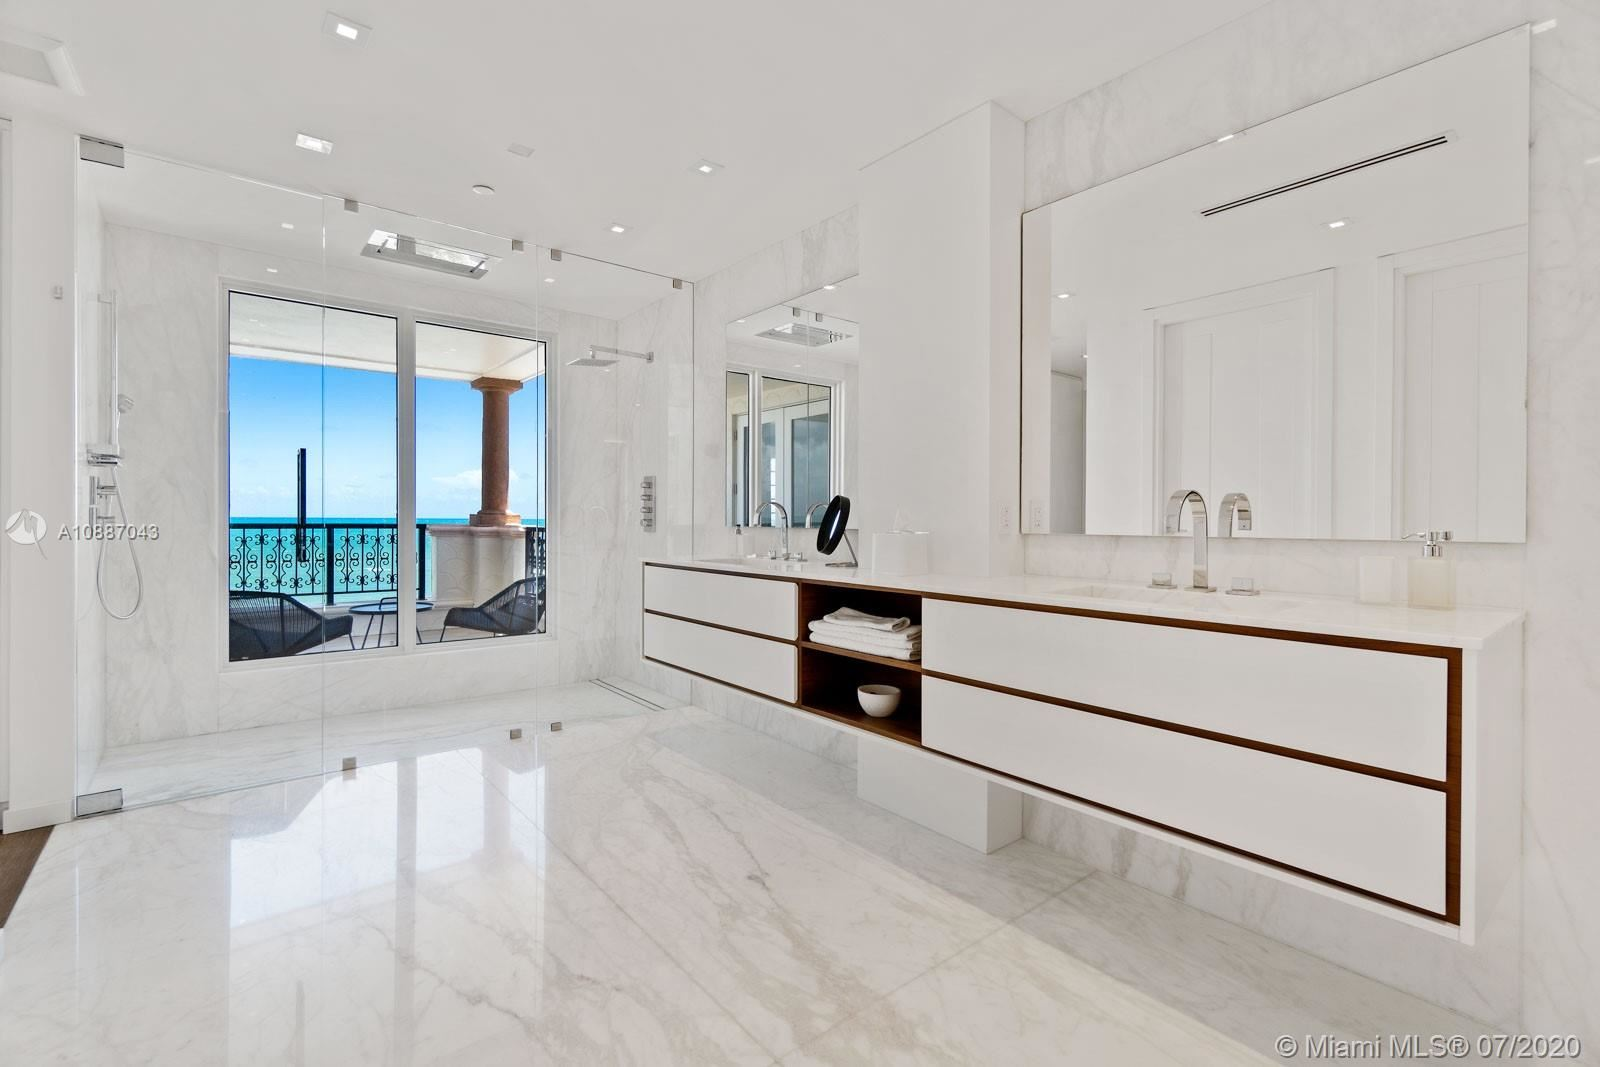 Photo 7 of Listing MLS a10887043 in 7764 Fisher Island Dr #7764 Miami Beach FL 33109